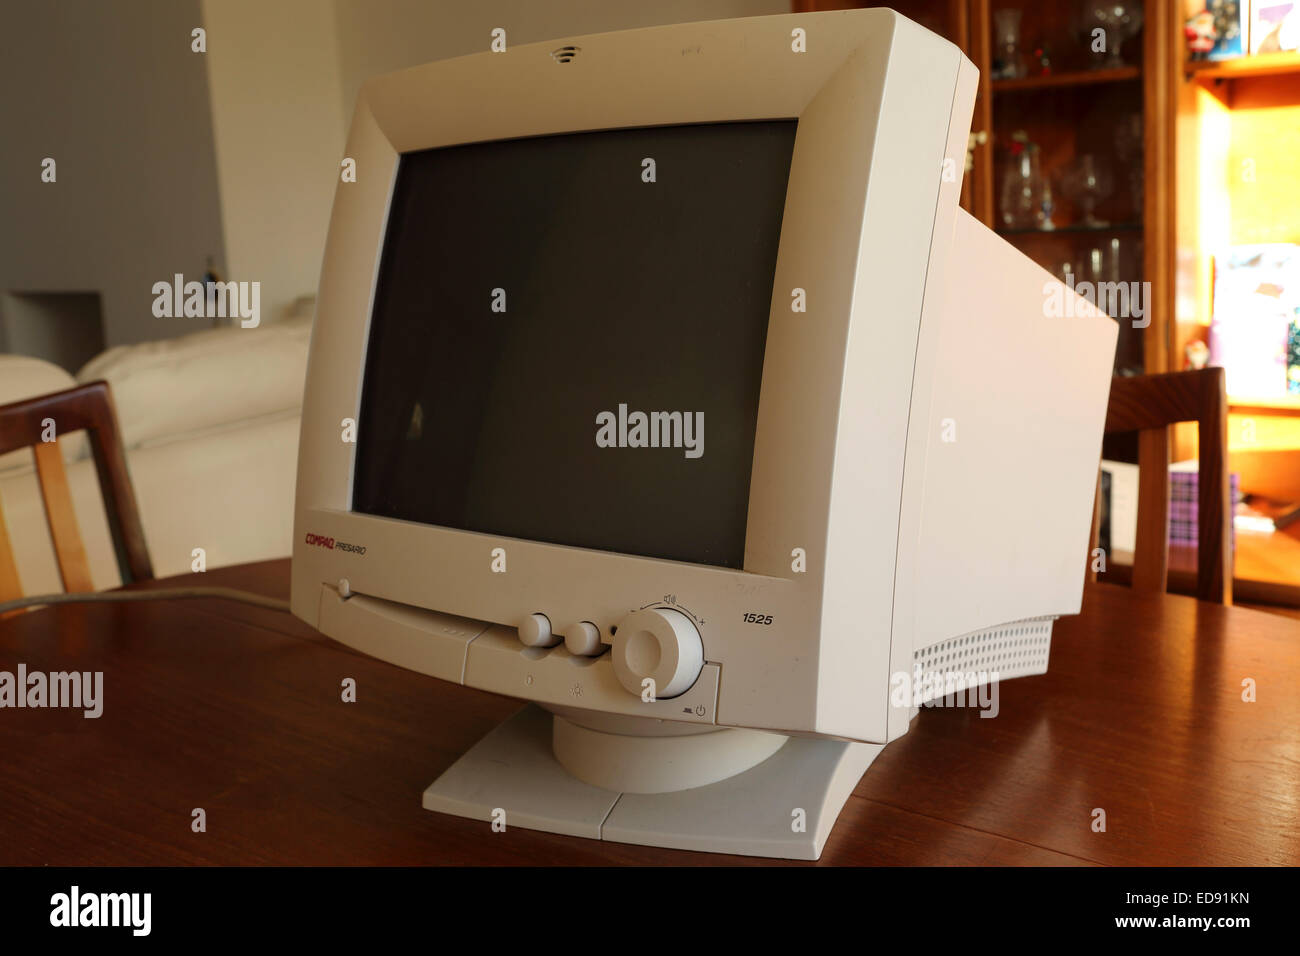 A Compaq 1525 monitor for a home computing set up. The monitor was produced in the 1990s. - Stock Image